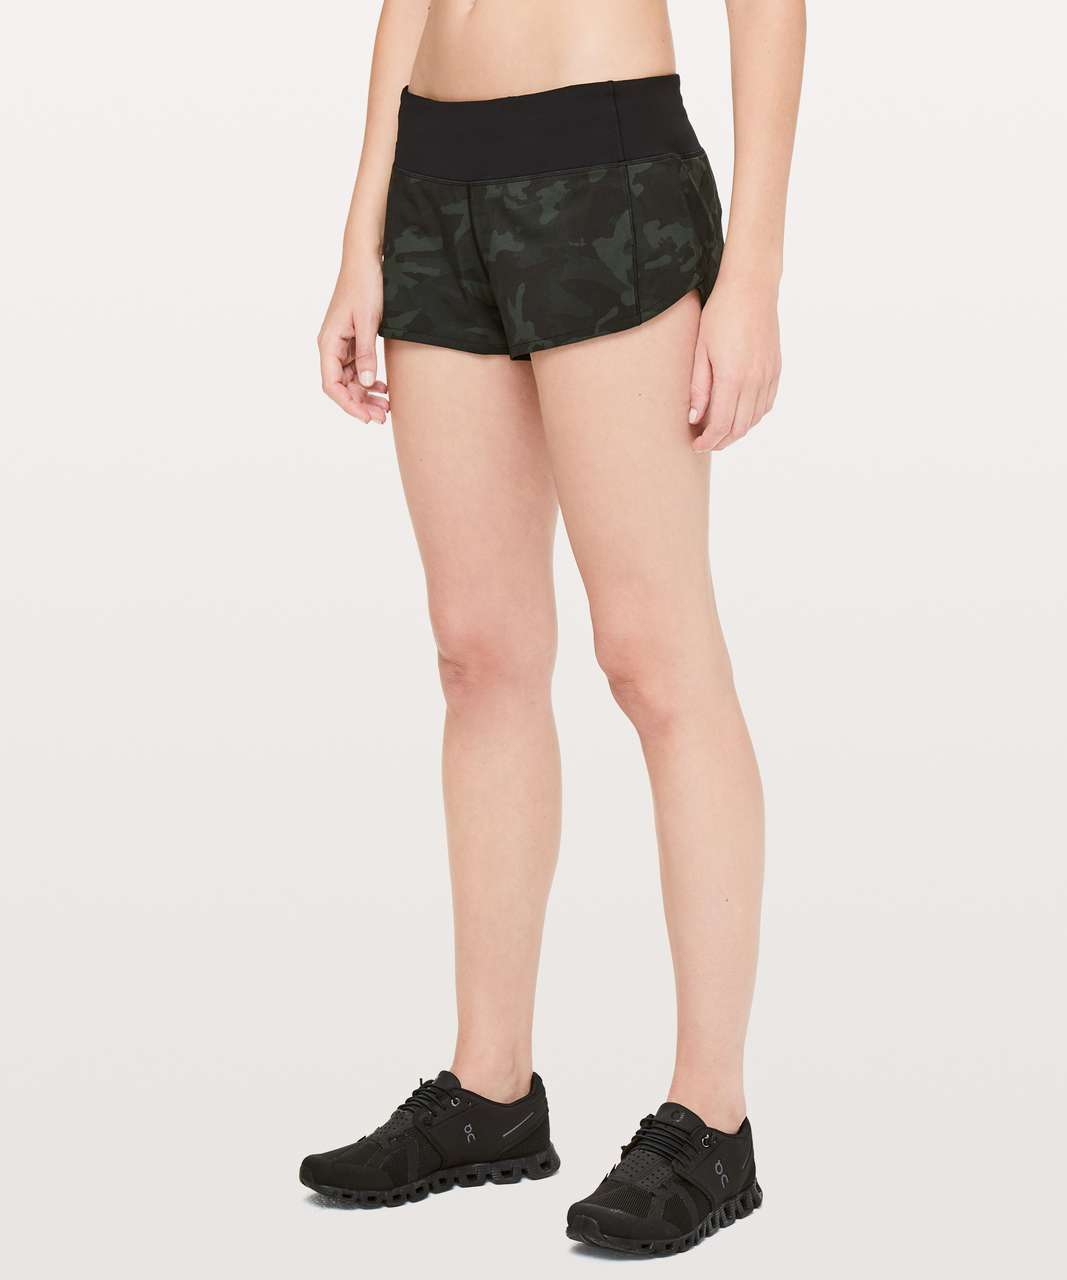 "Lululemon Speed Up Short *2.5"" - Incognito Camo Multi Gator Green / Black (First Release)"